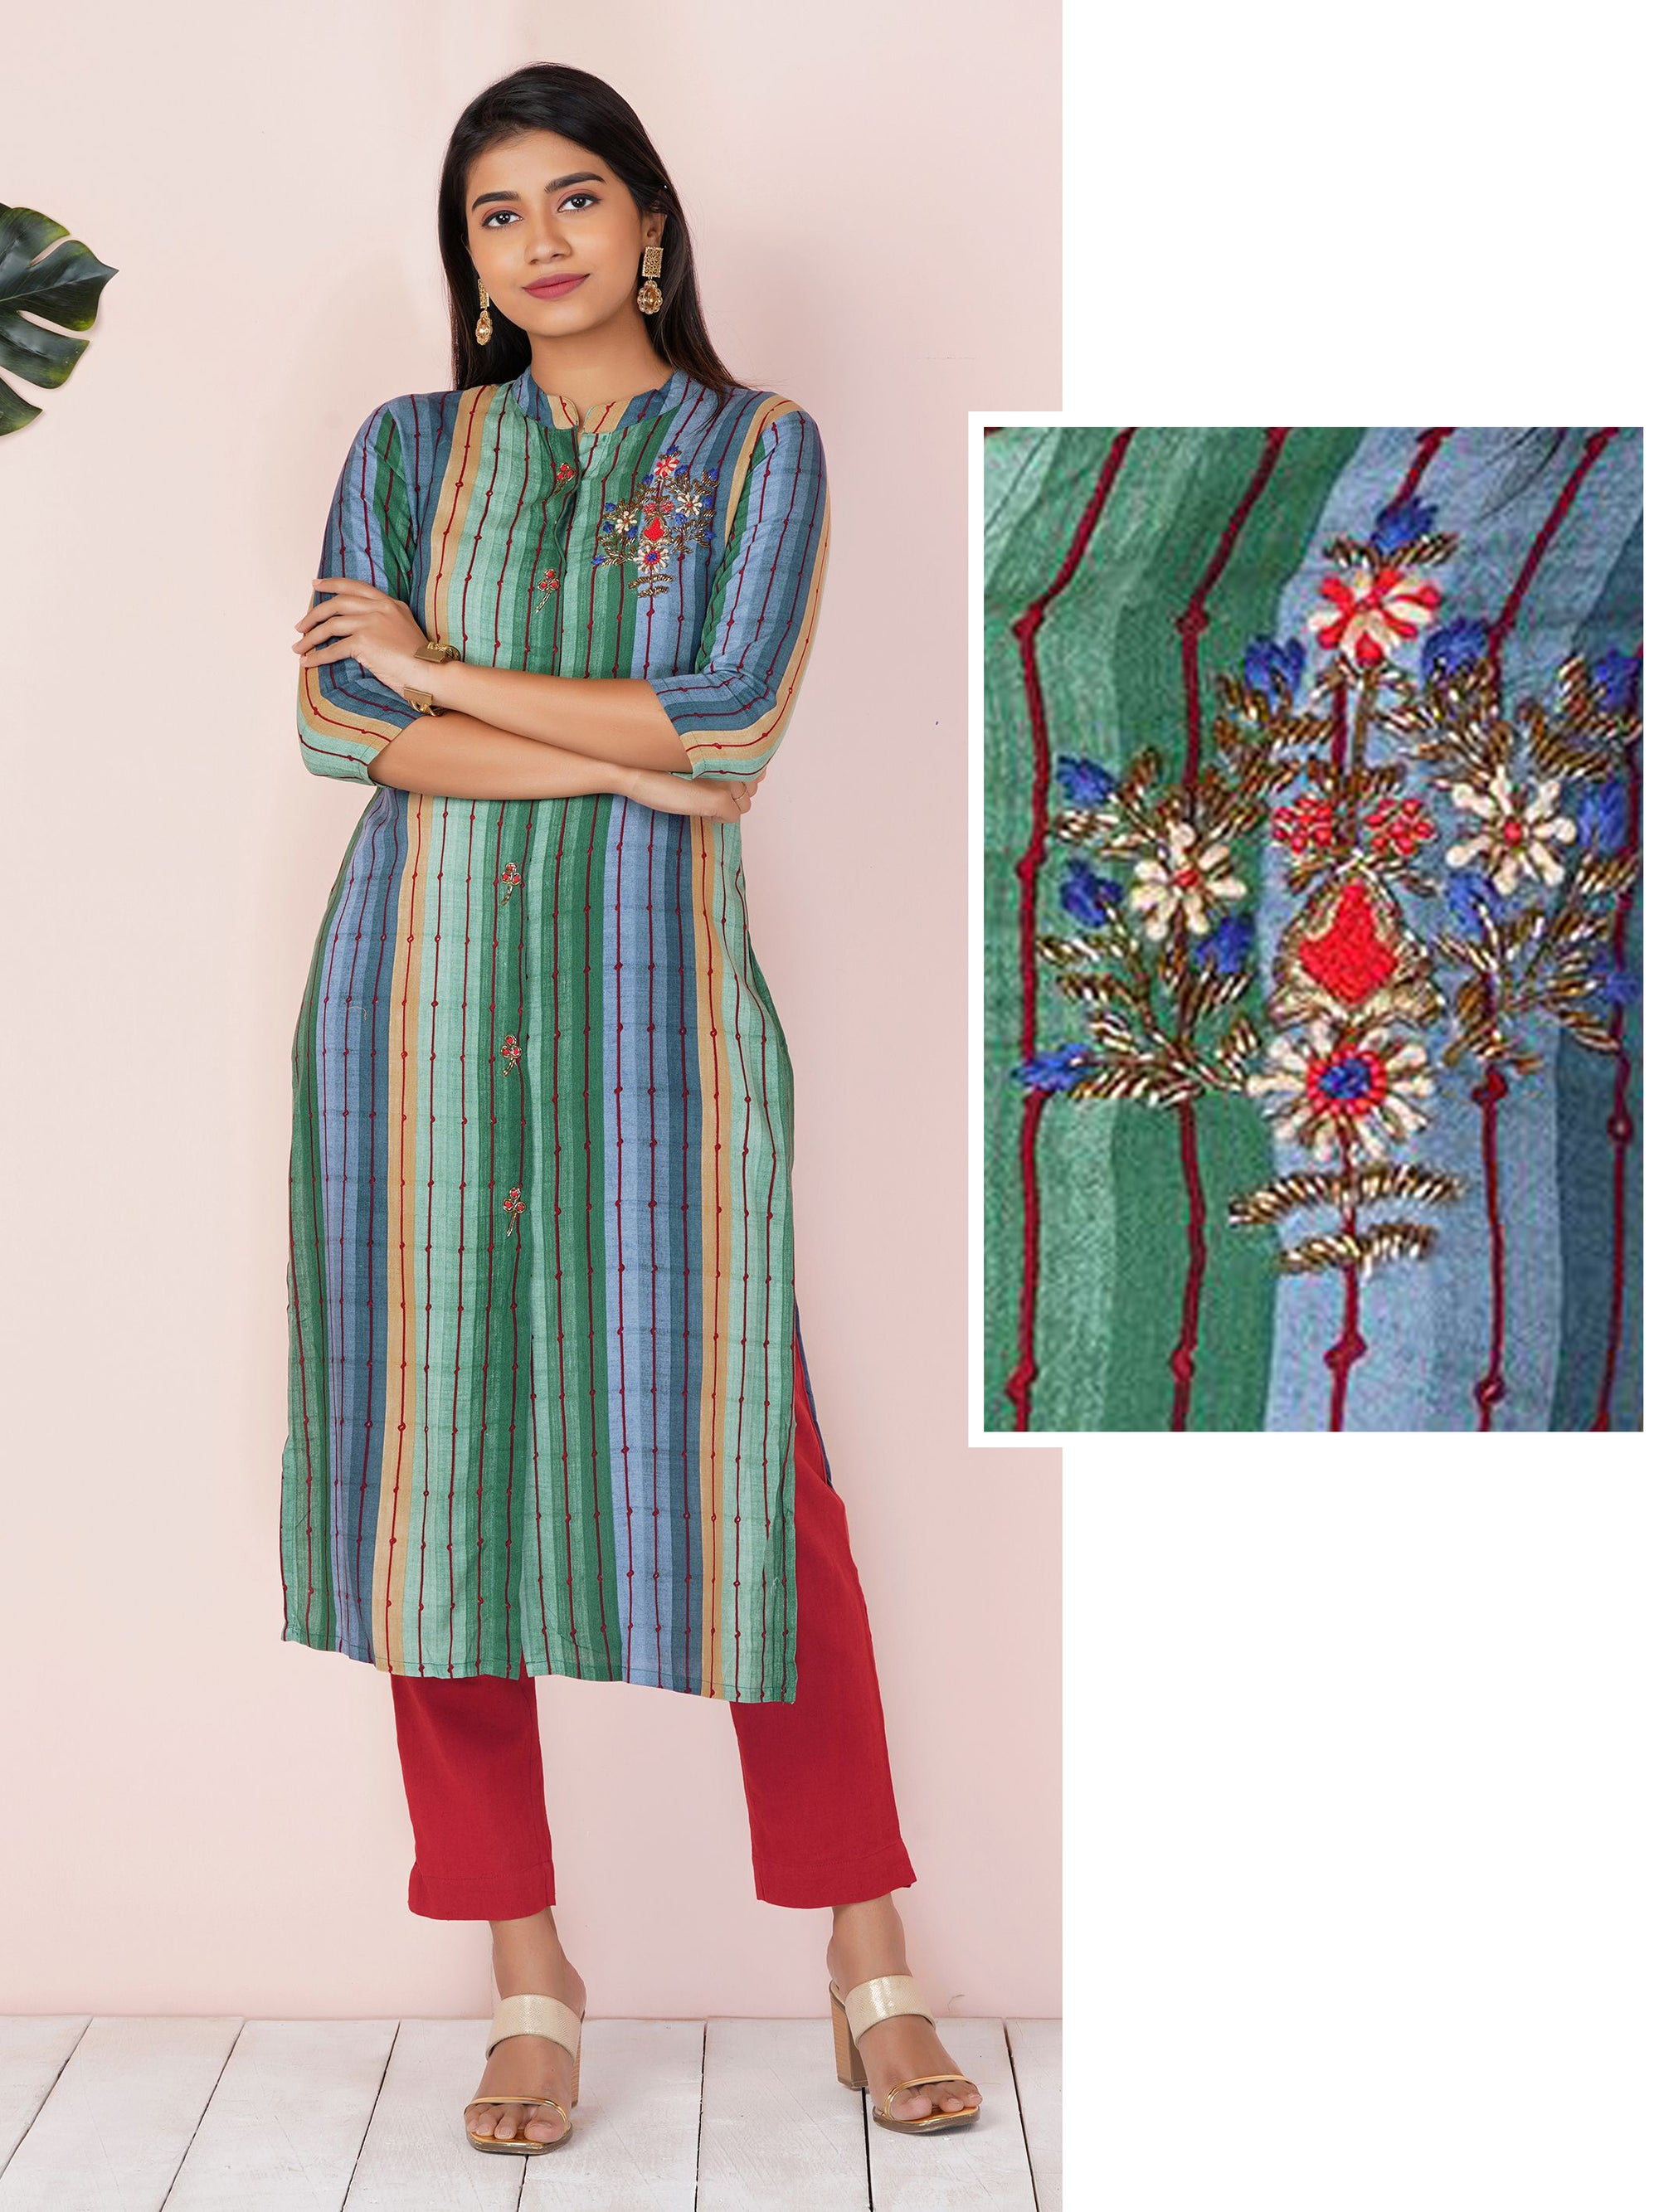 Fusion Stripe-on-Stripe With Cutdana, Beads and Floral Embroidery